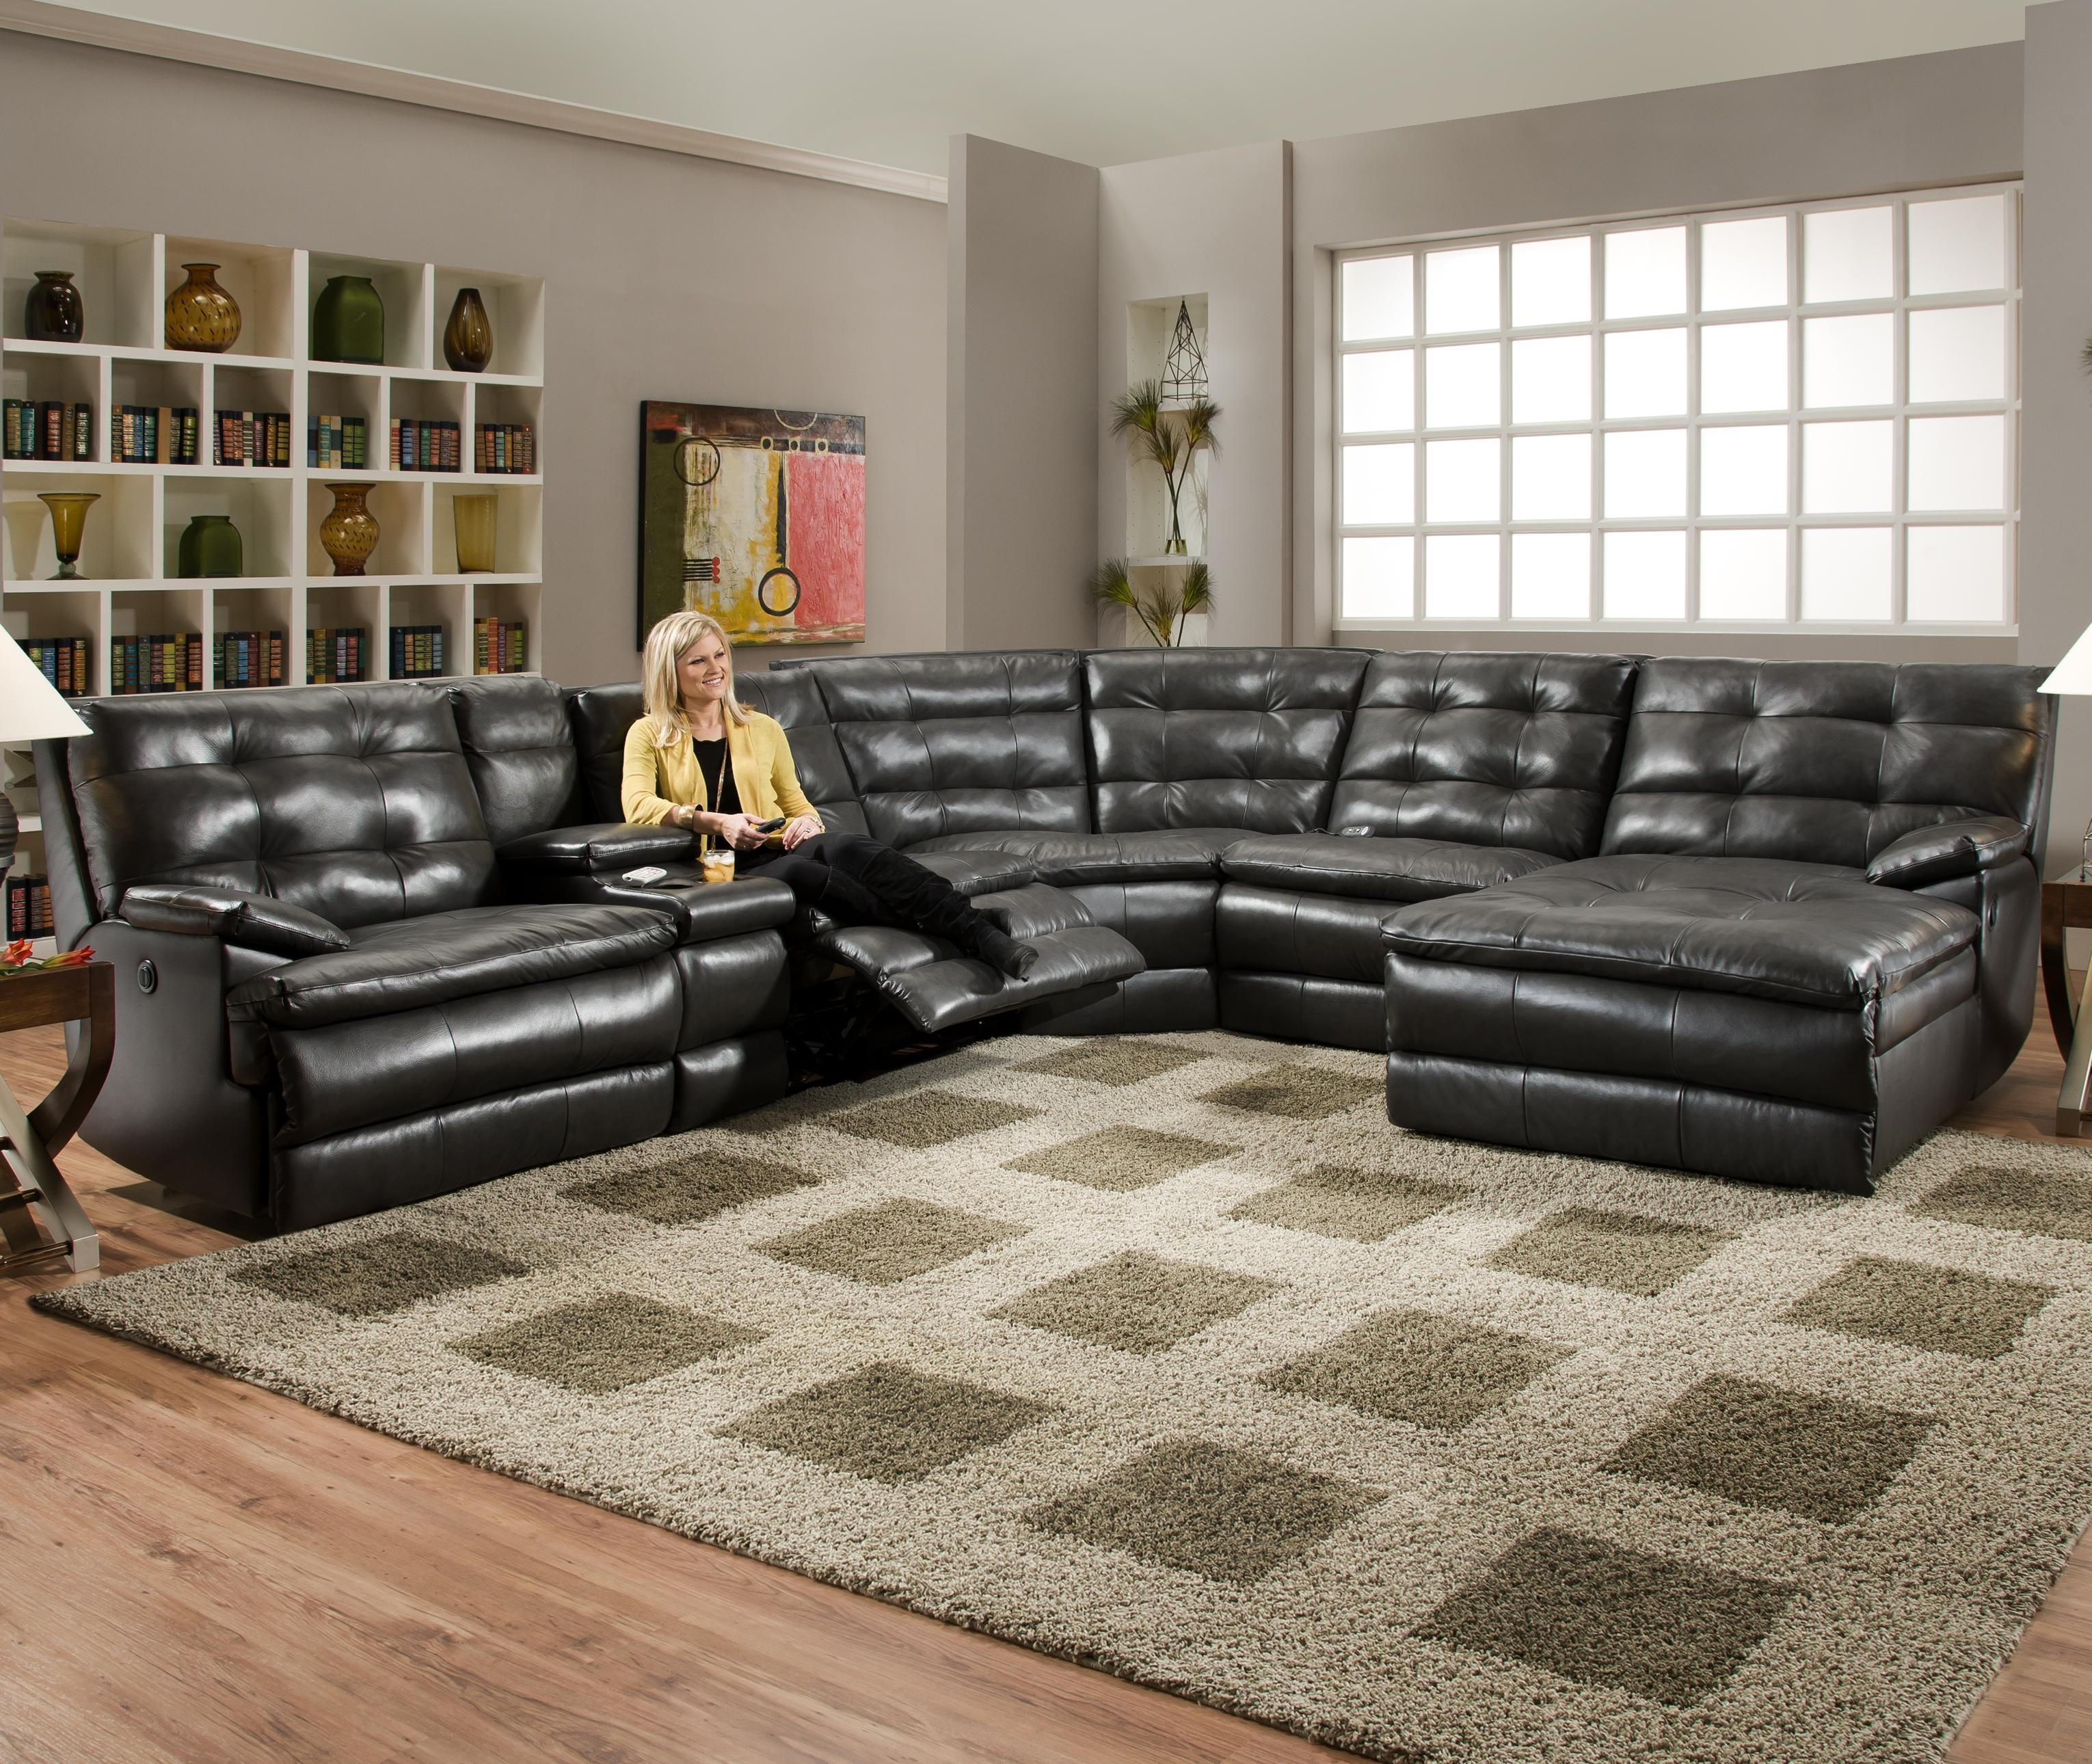 Great Leather Sectional Sofa With Power Recliner 14 On U Shaped In U Shaped Reclining Sectional (View 11 of 20)